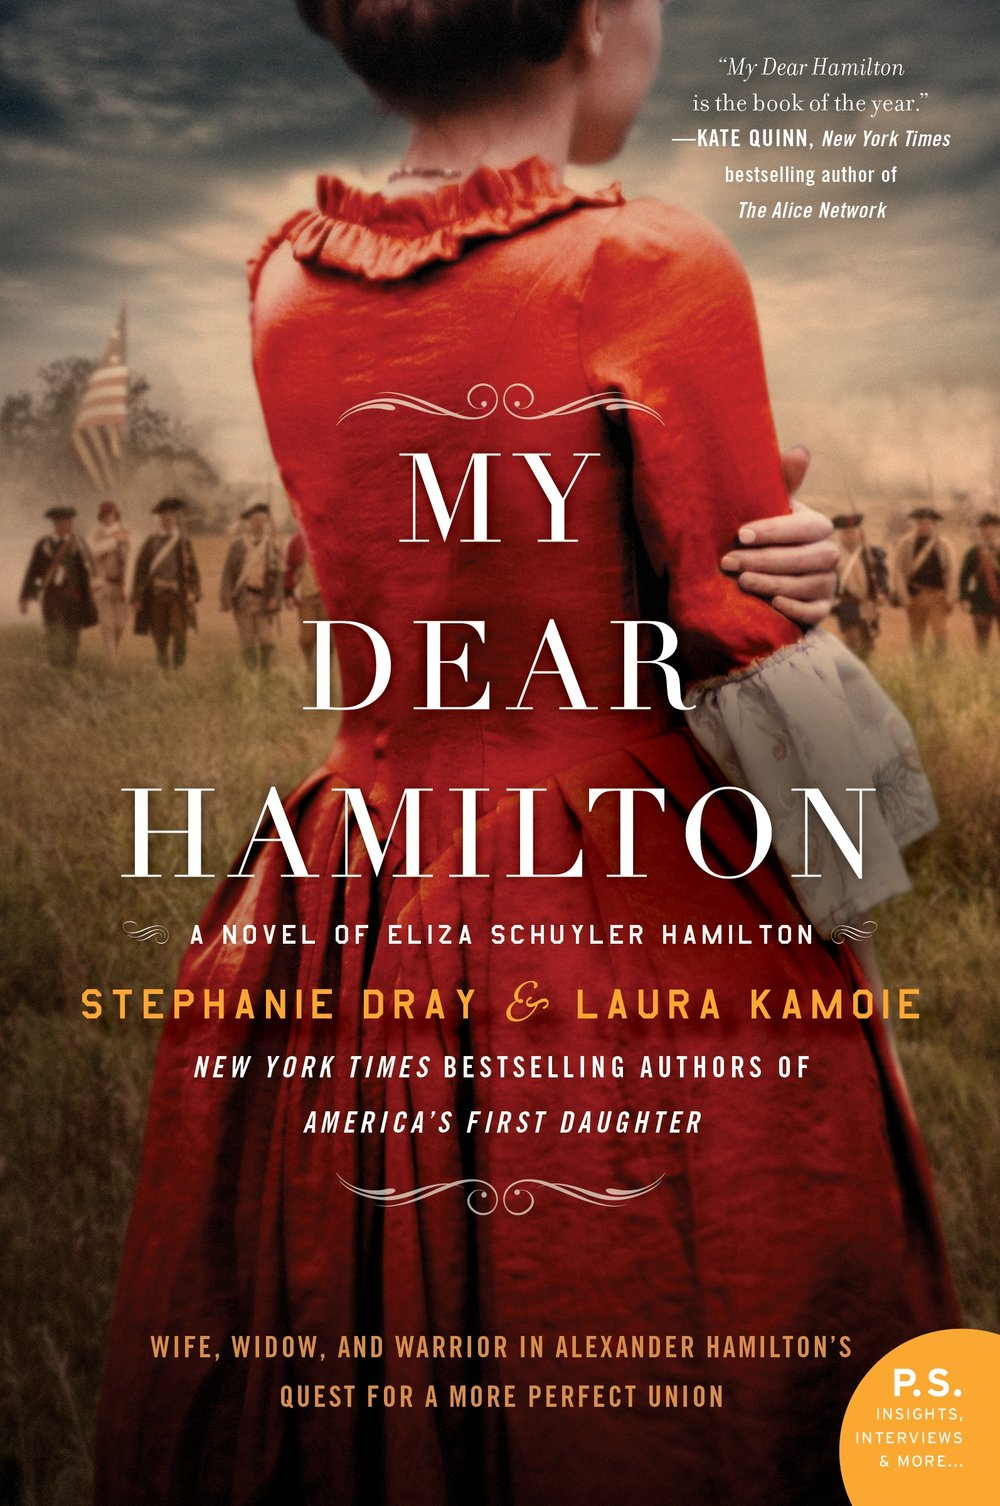 My Dear Hamilton- A Novel of Eliza Schuyler Hamilton by Stephanie Dray and Laura Kamoie .jpg